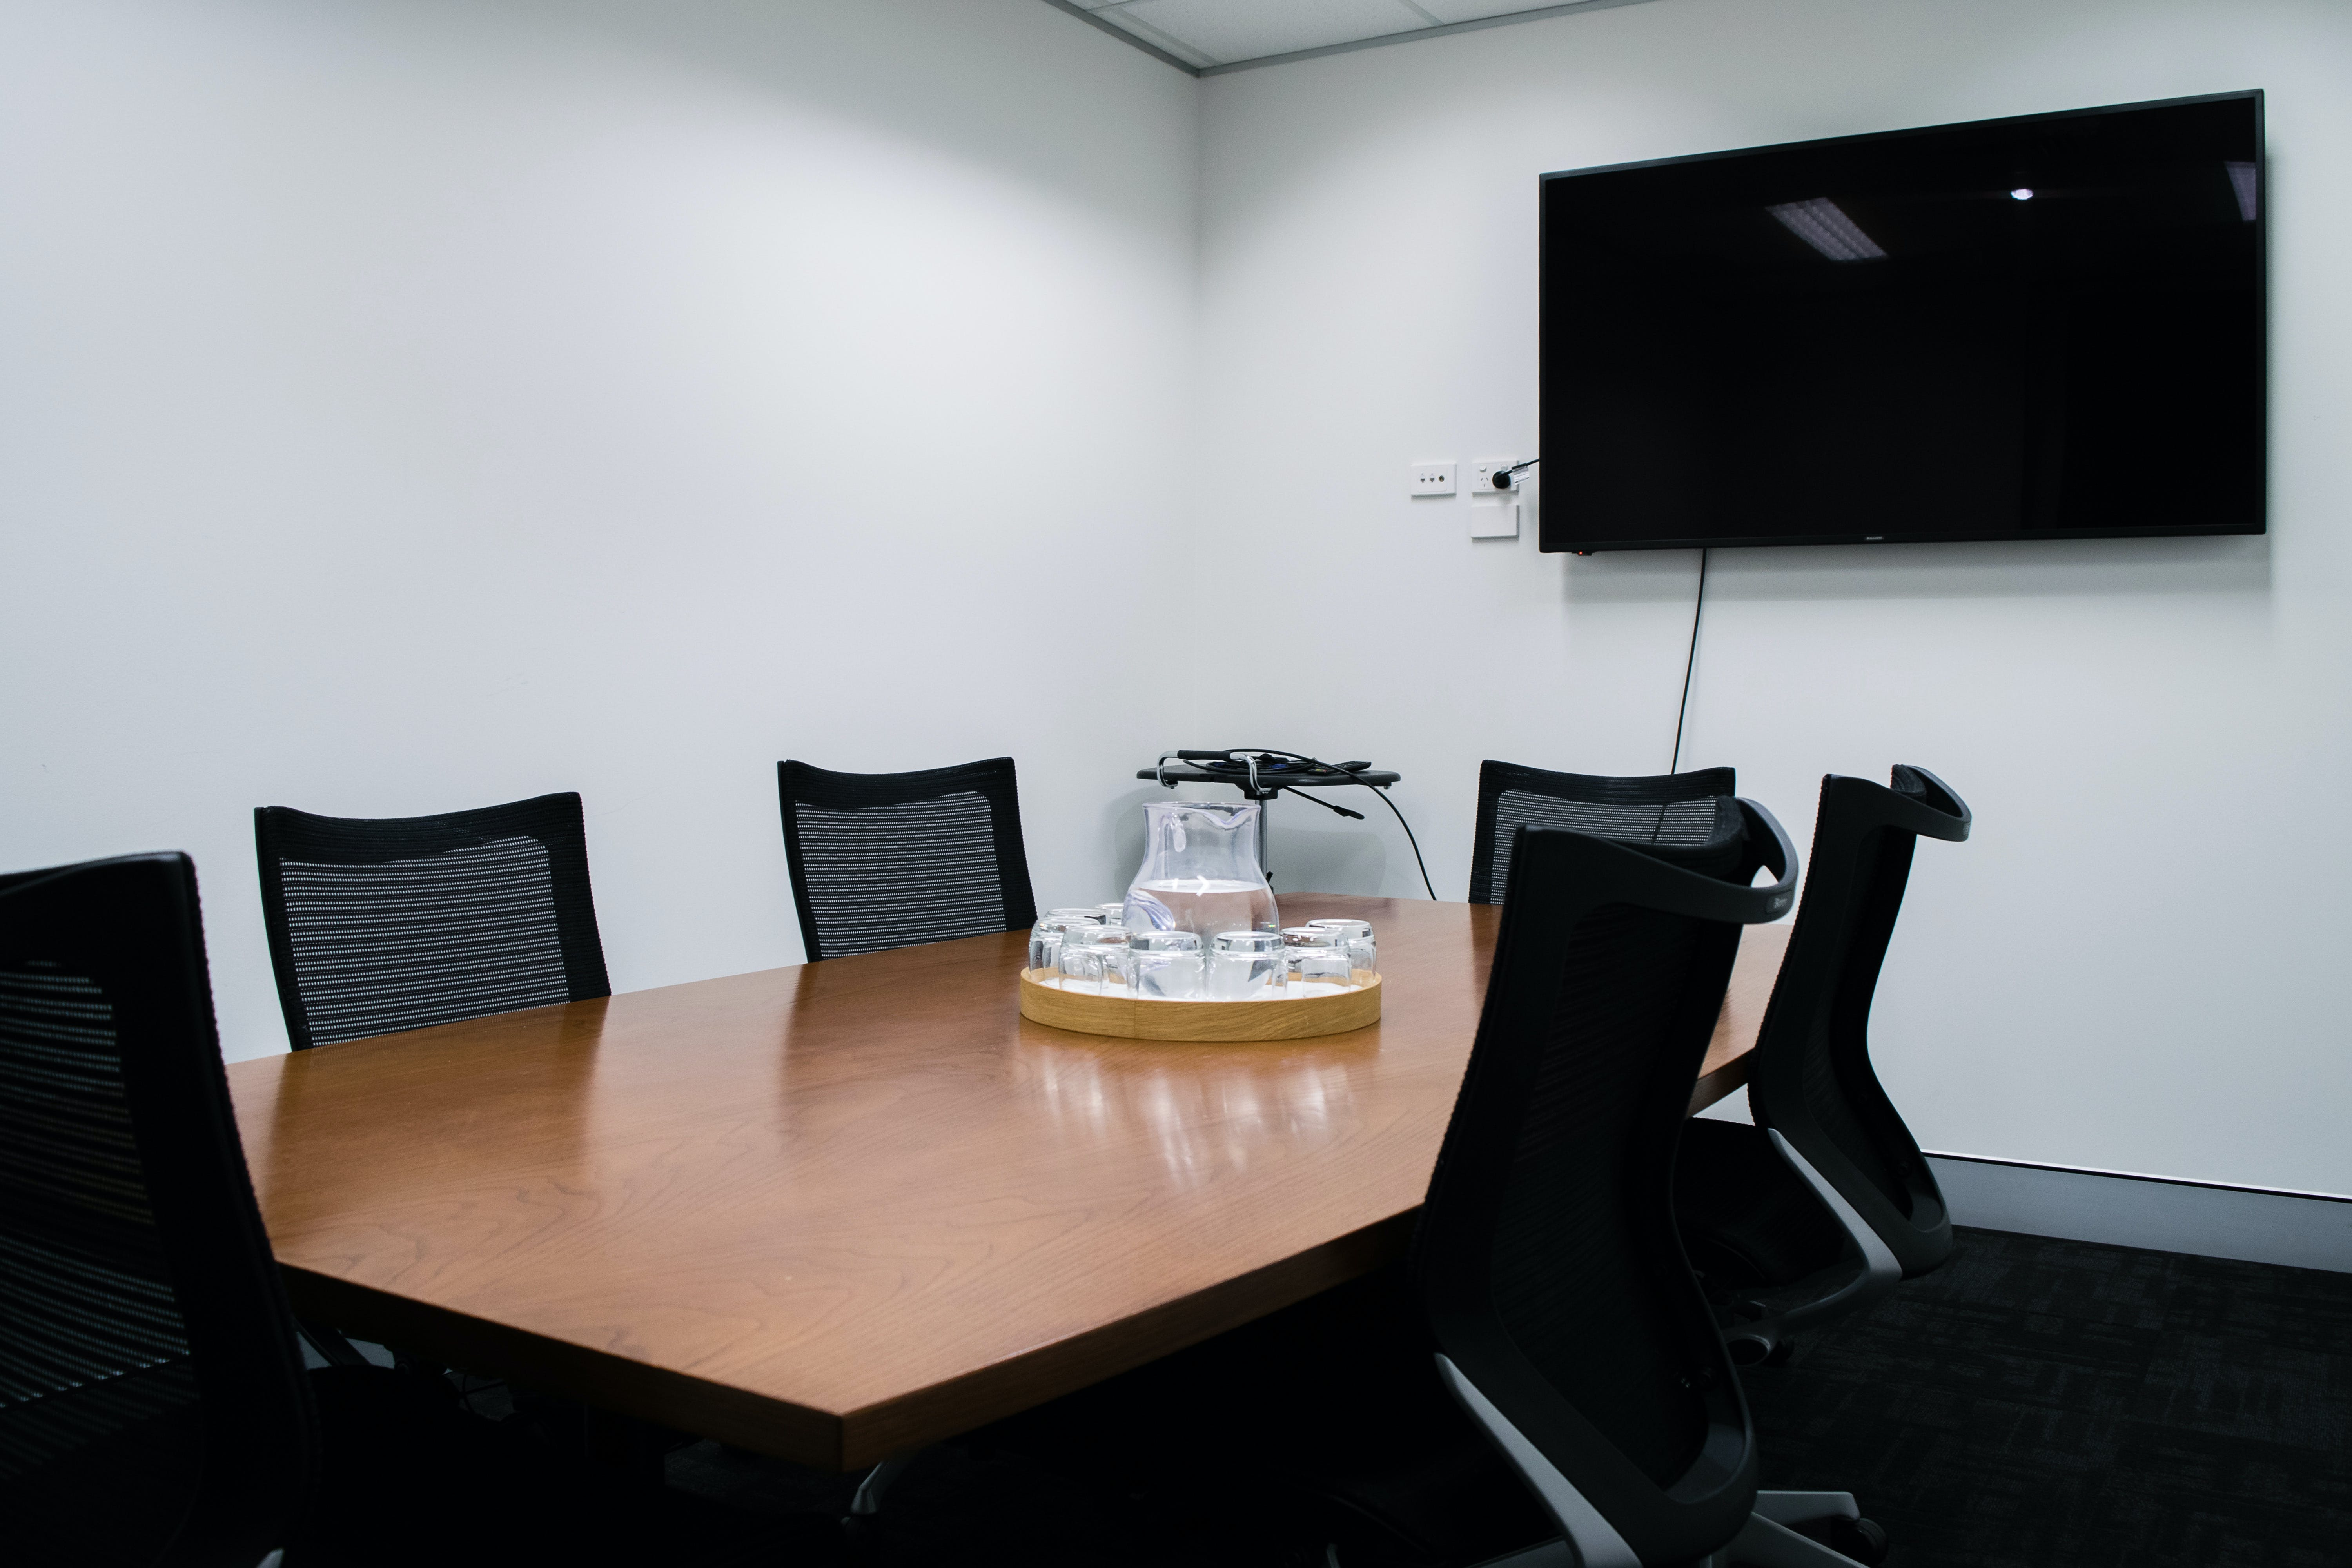 Meeting room at Allsports Physiotherapy, image 1